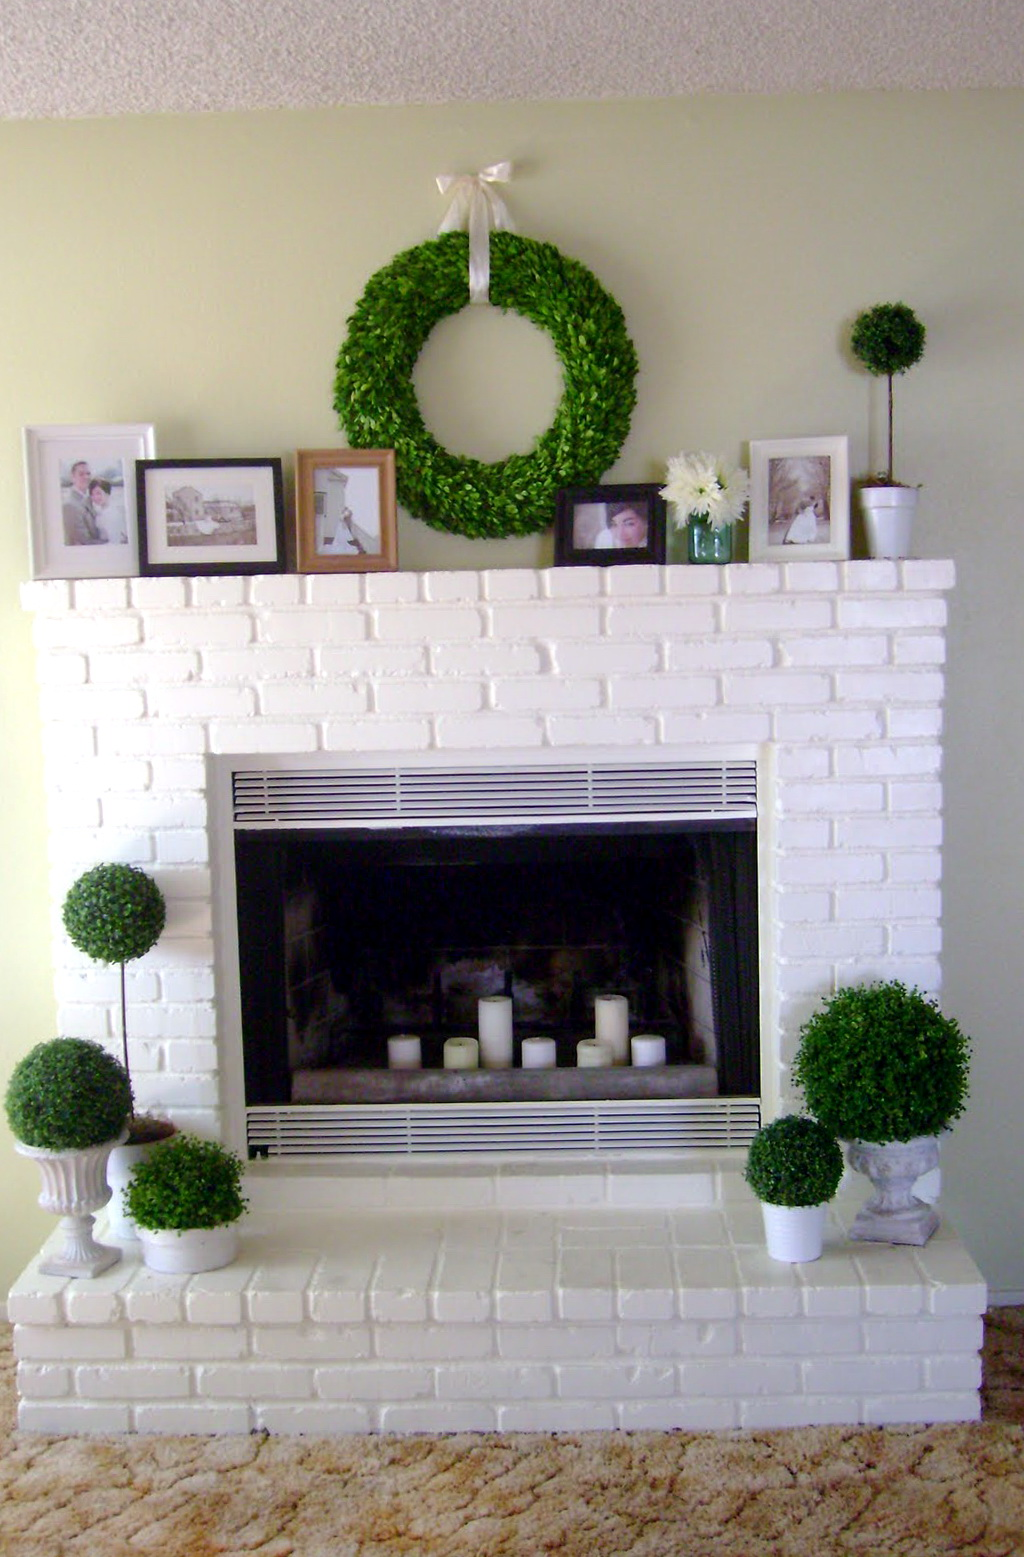 White brick fireplace makeover fireplace design ideas Fireplace design ideas